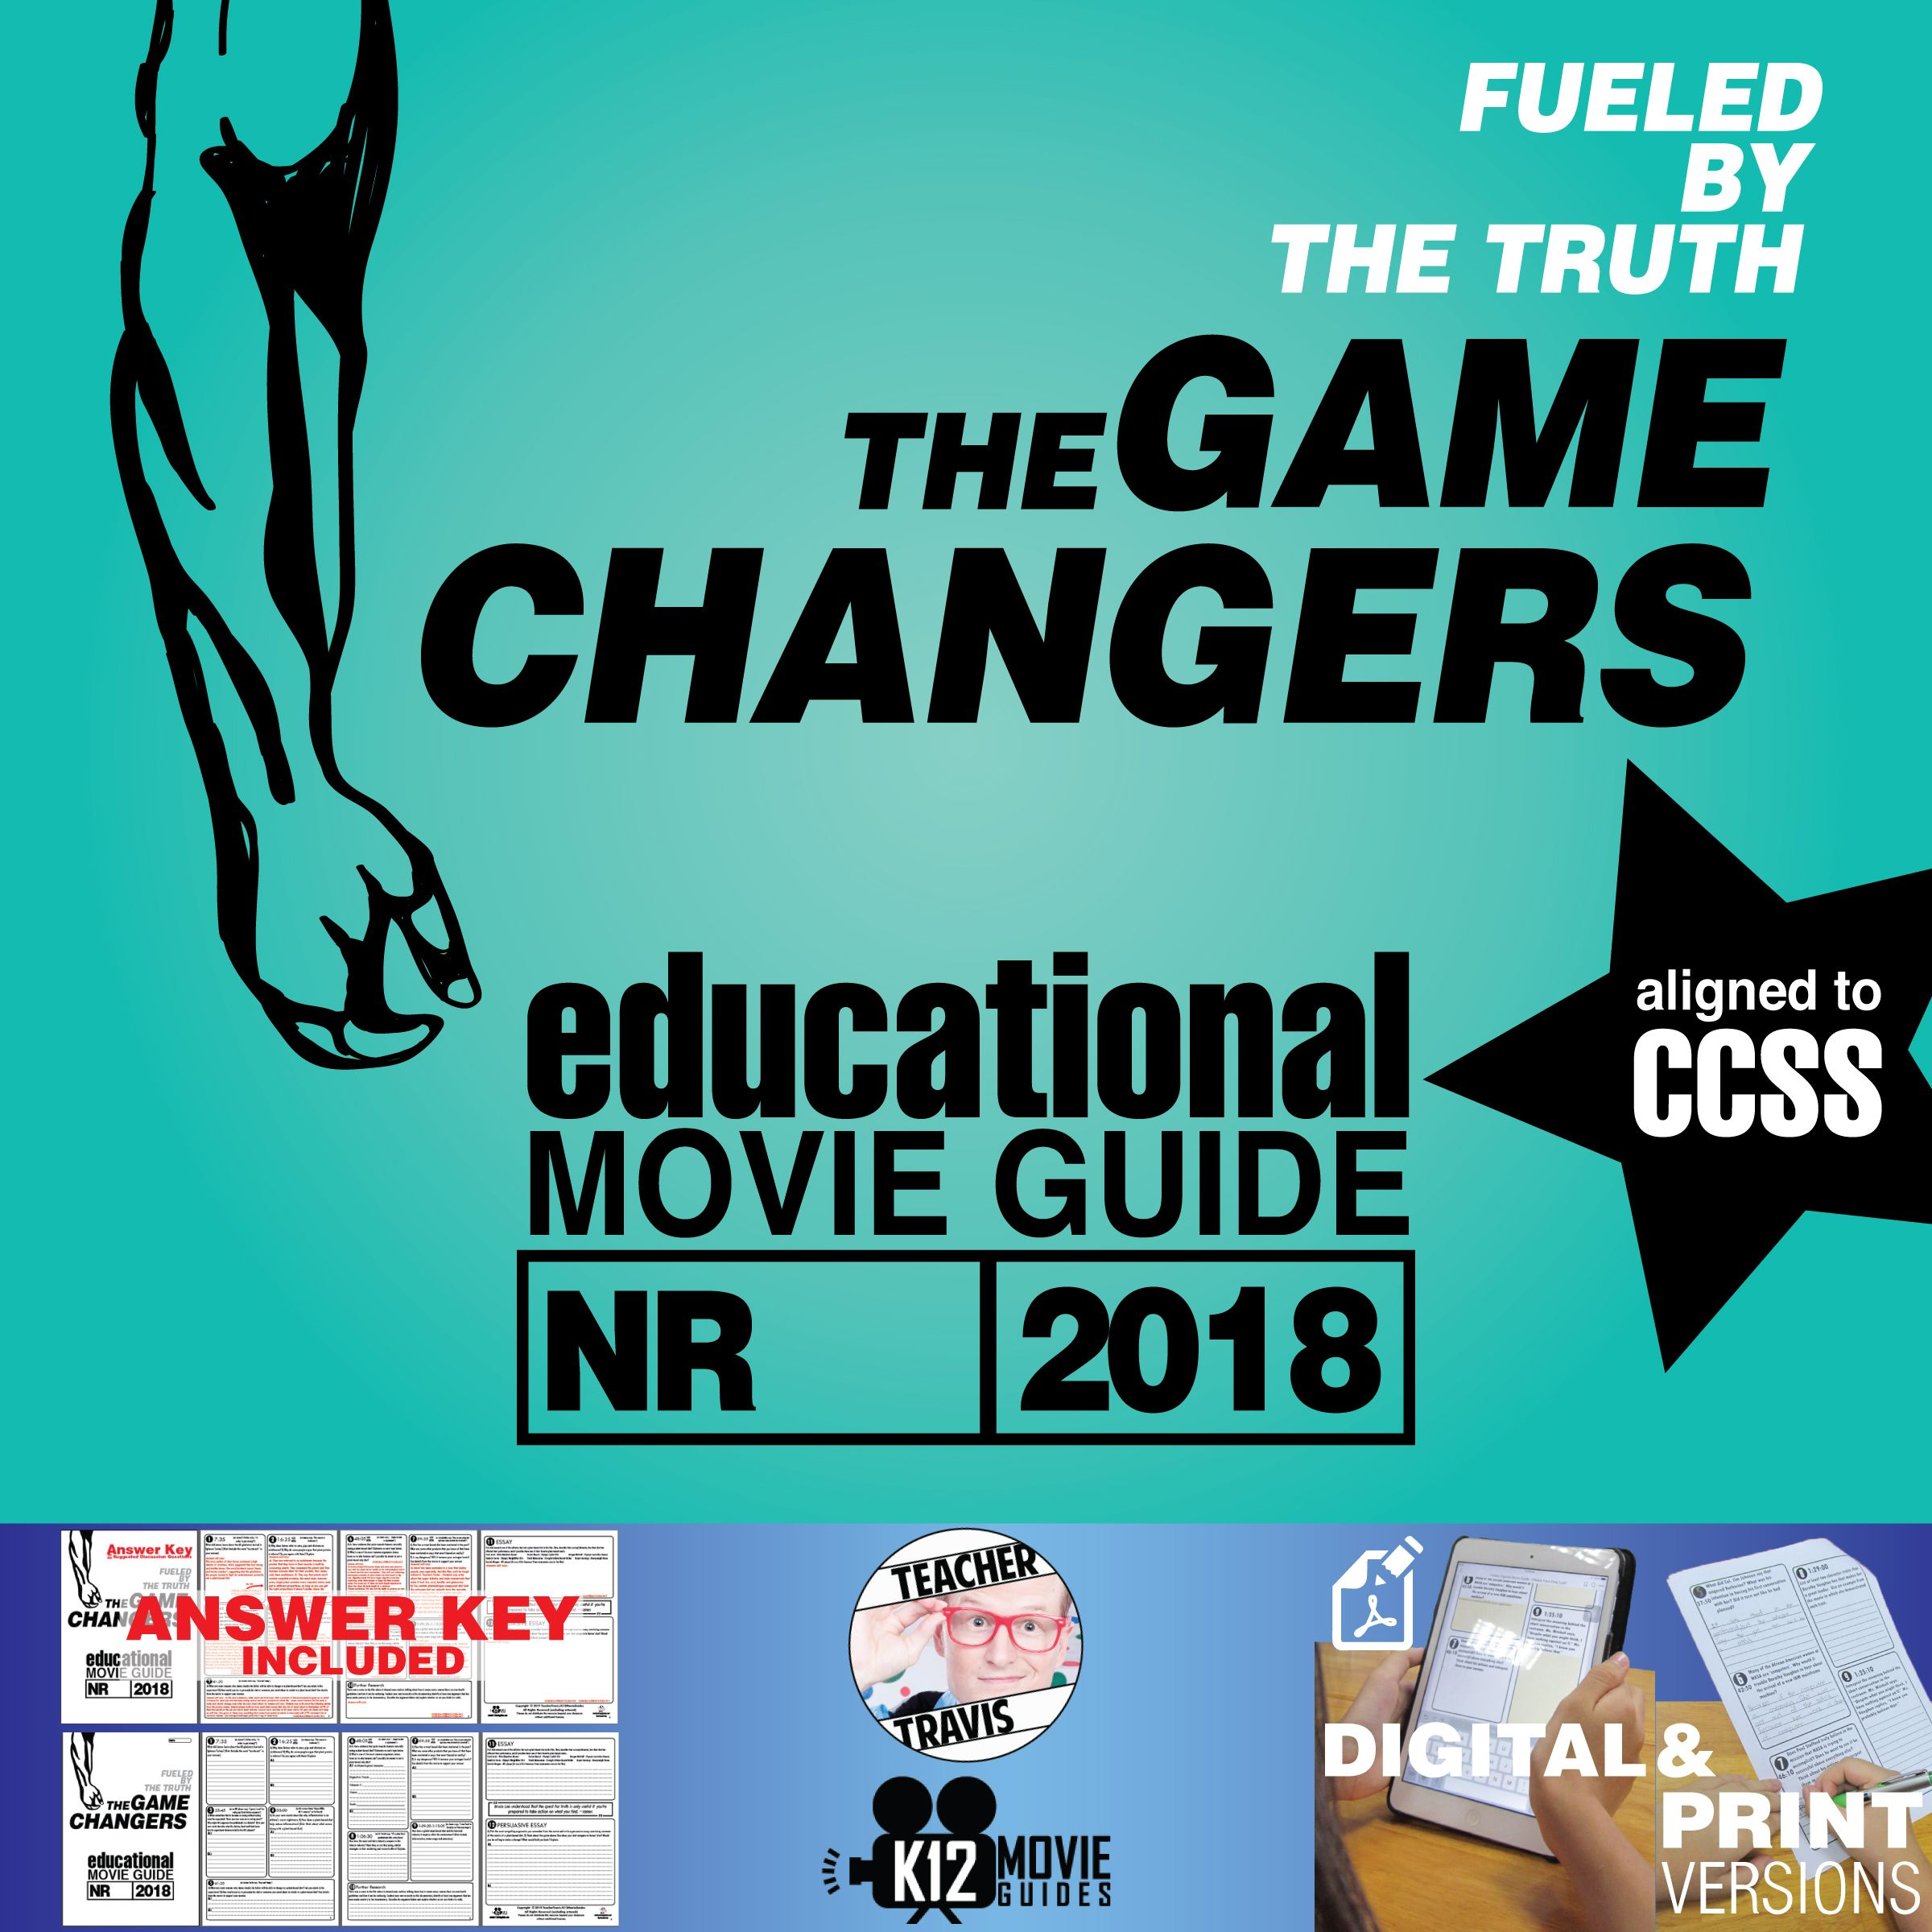 The Game Changers Documentary Movie Guide Questions